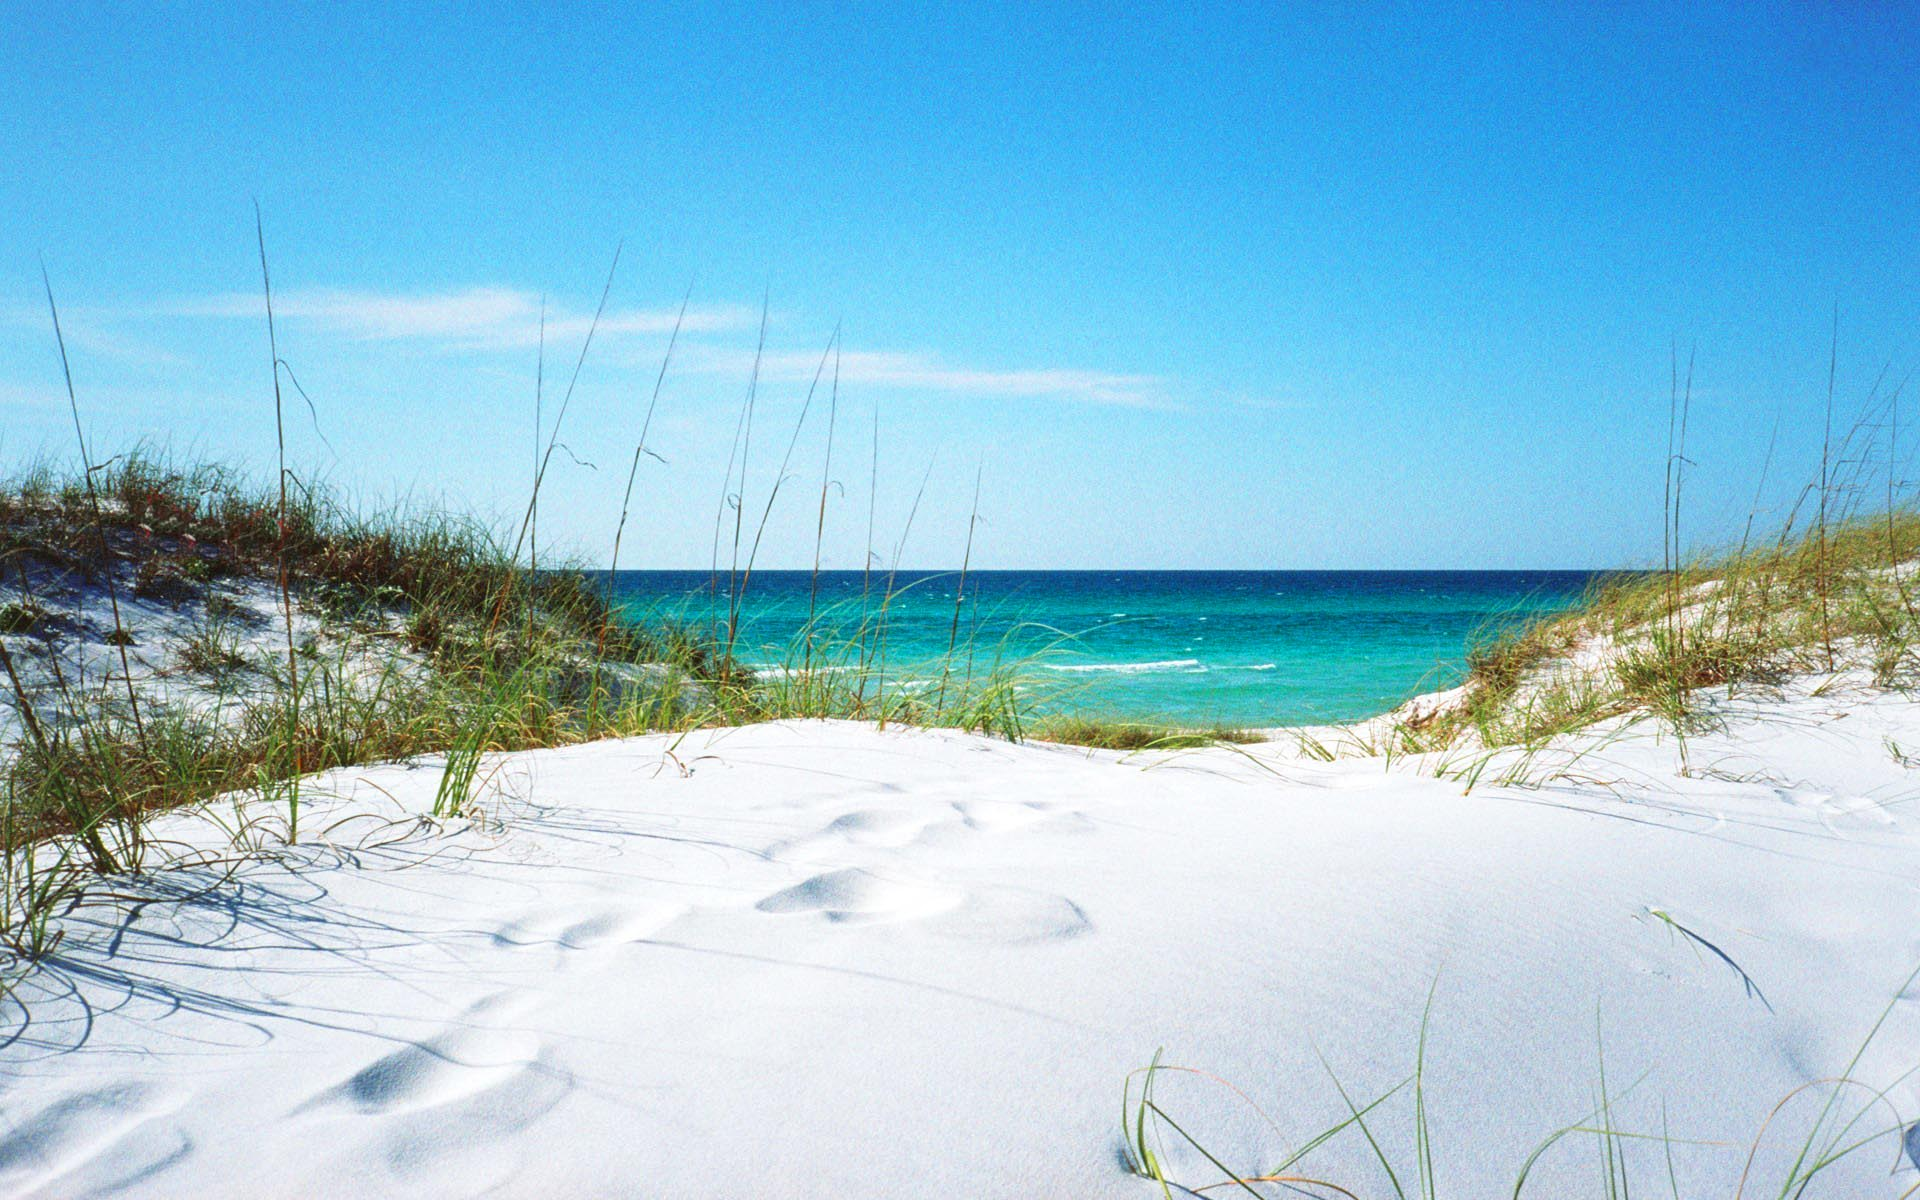 20723 white sanded beach in florida 1920x1200 beach wallpaperjpg 1920x1200